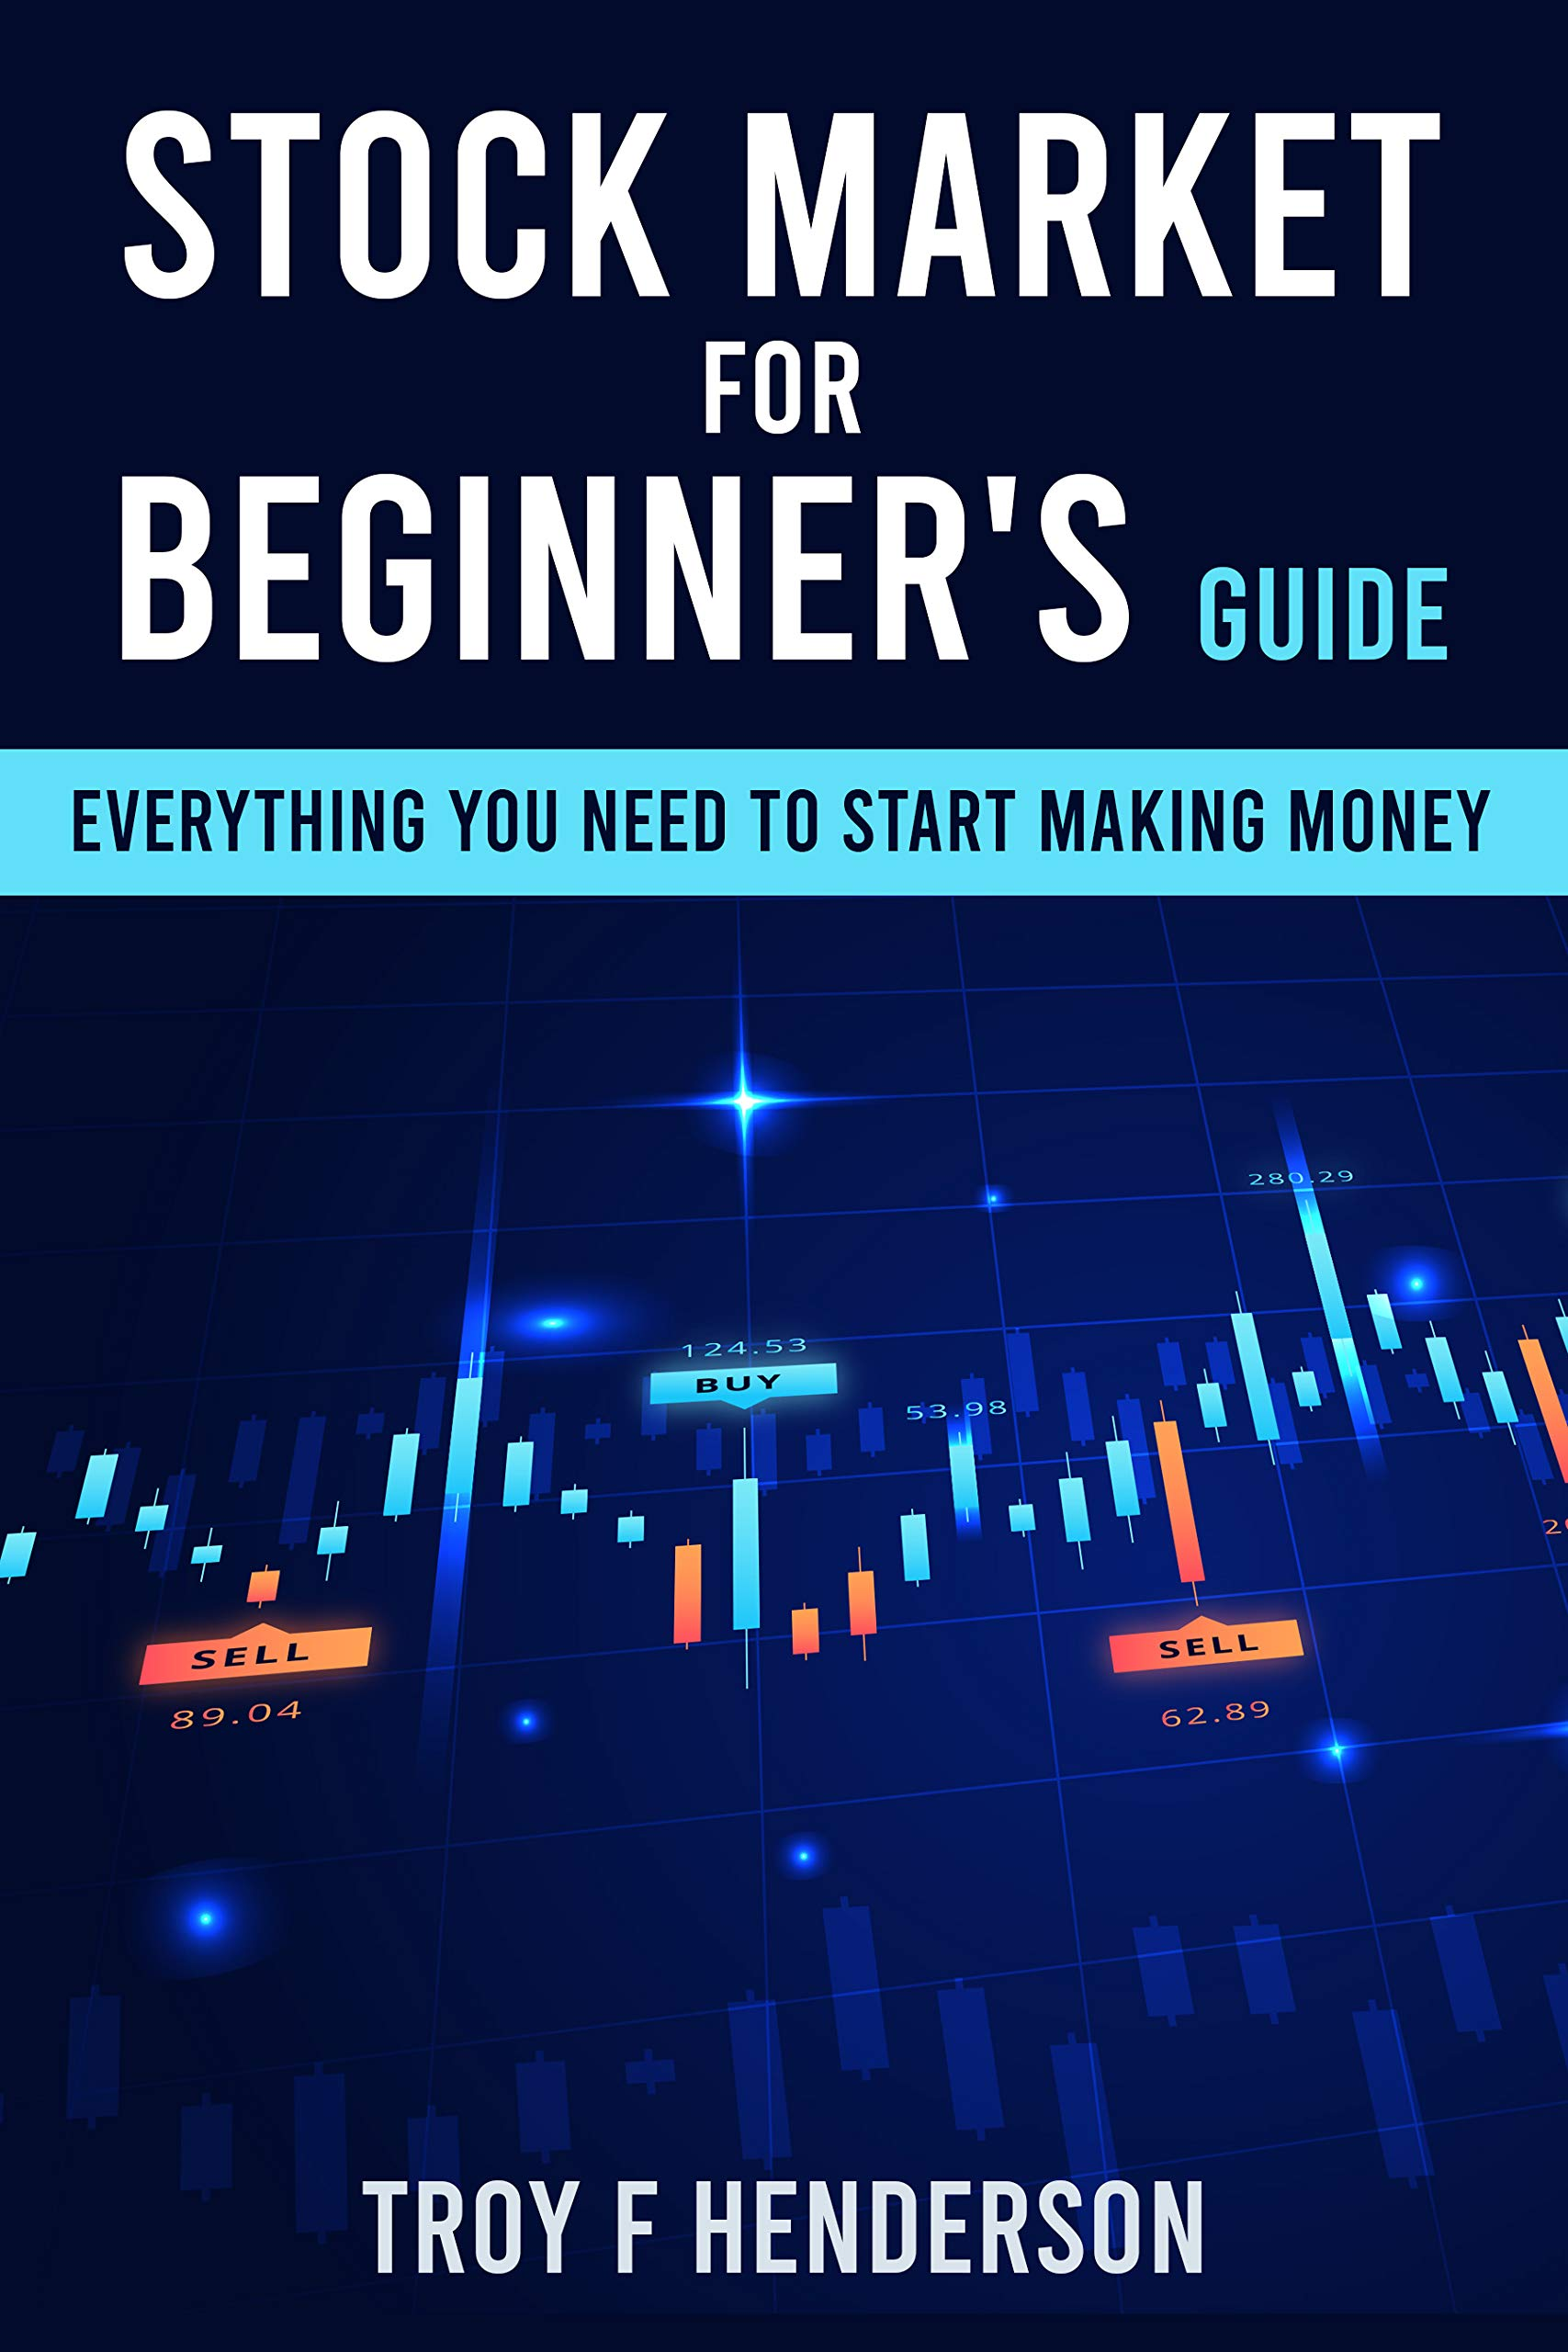 STОСK MАRKЕT FOR BEGINNER'S GUIDE: Everything You Need to Start Making Money